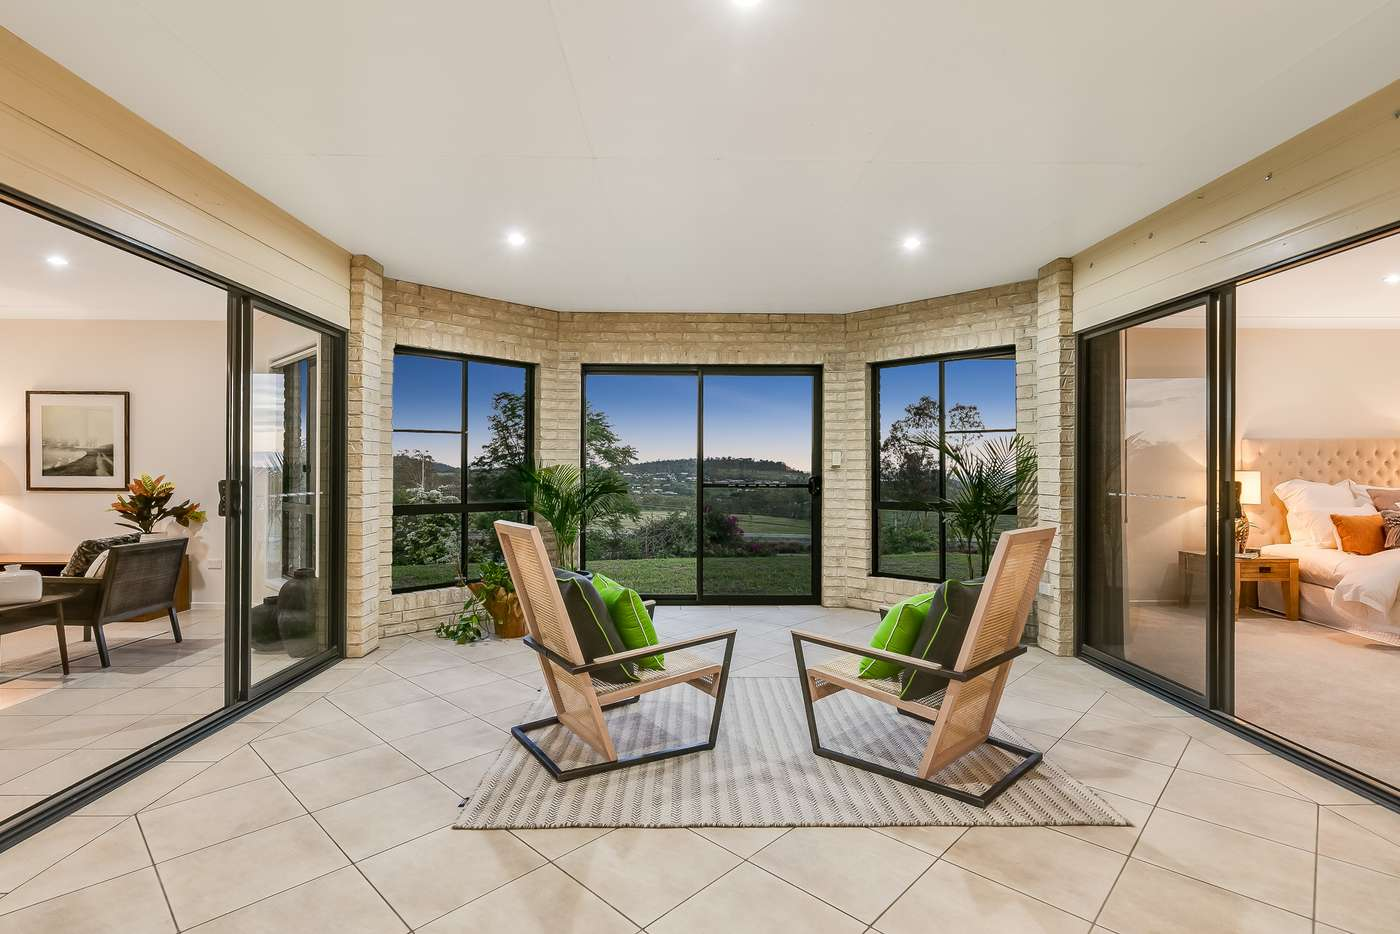 Fifth view of Homely house listing, 21 Coverdale Crescent, Cotswold Hills QLD 4350